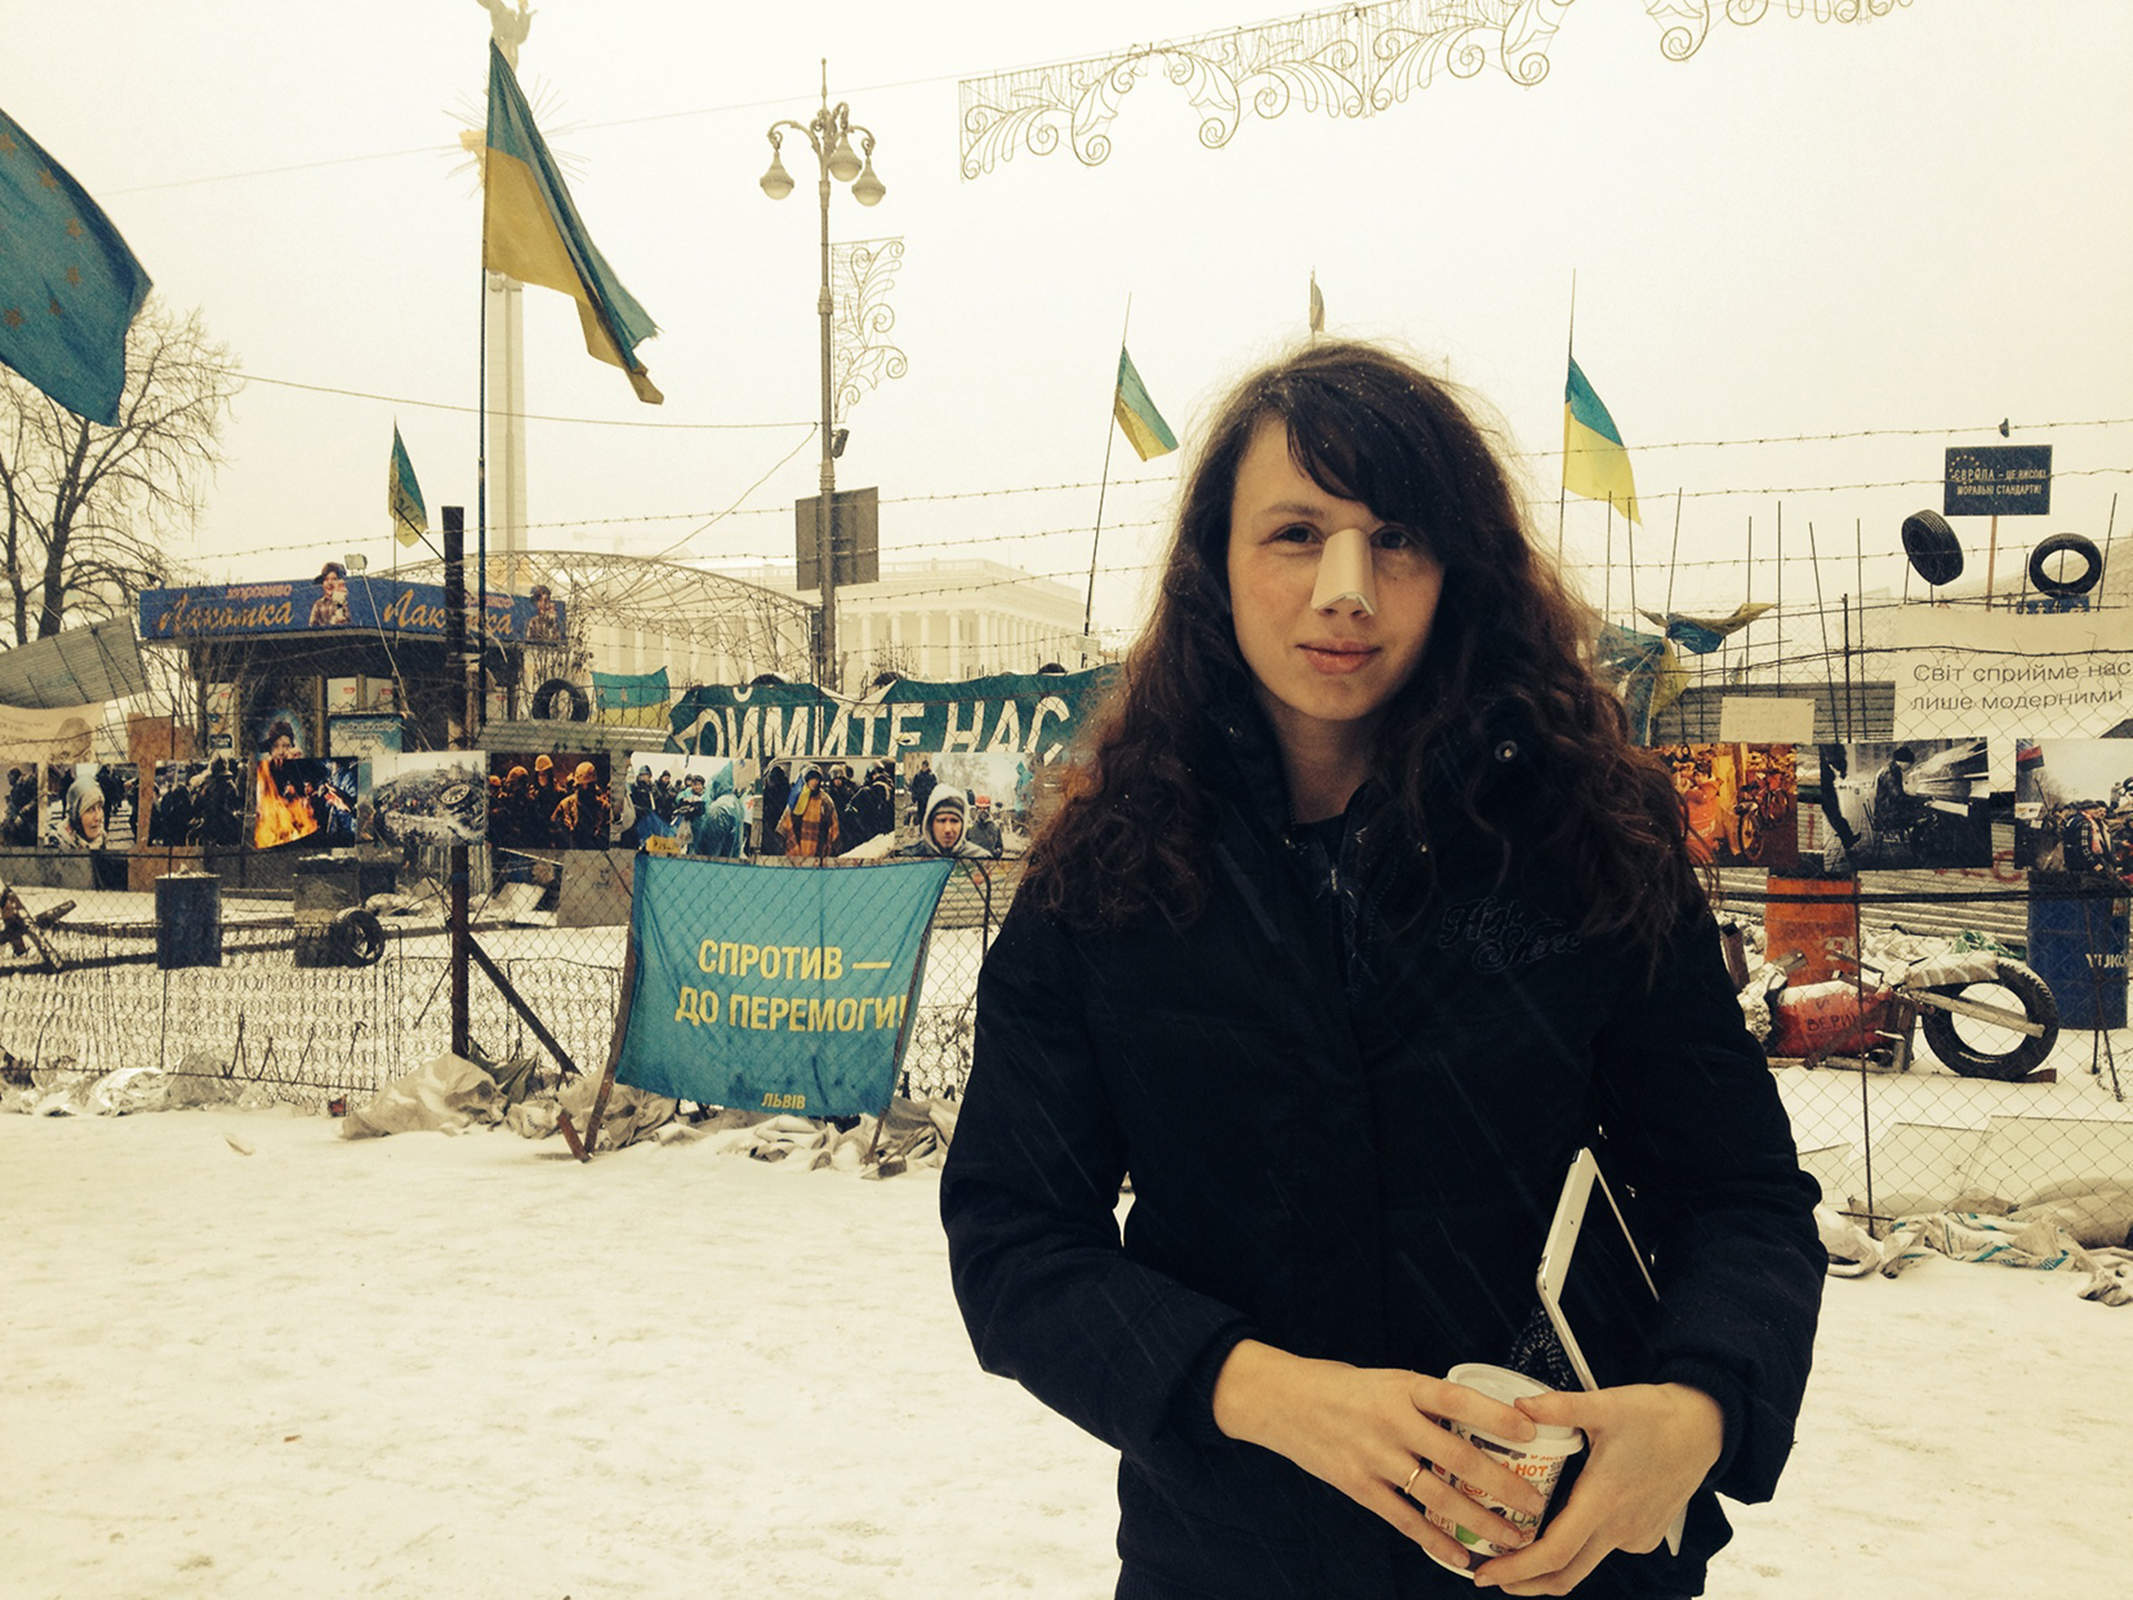 No chickening out for activists subject to intimidation in Kiev